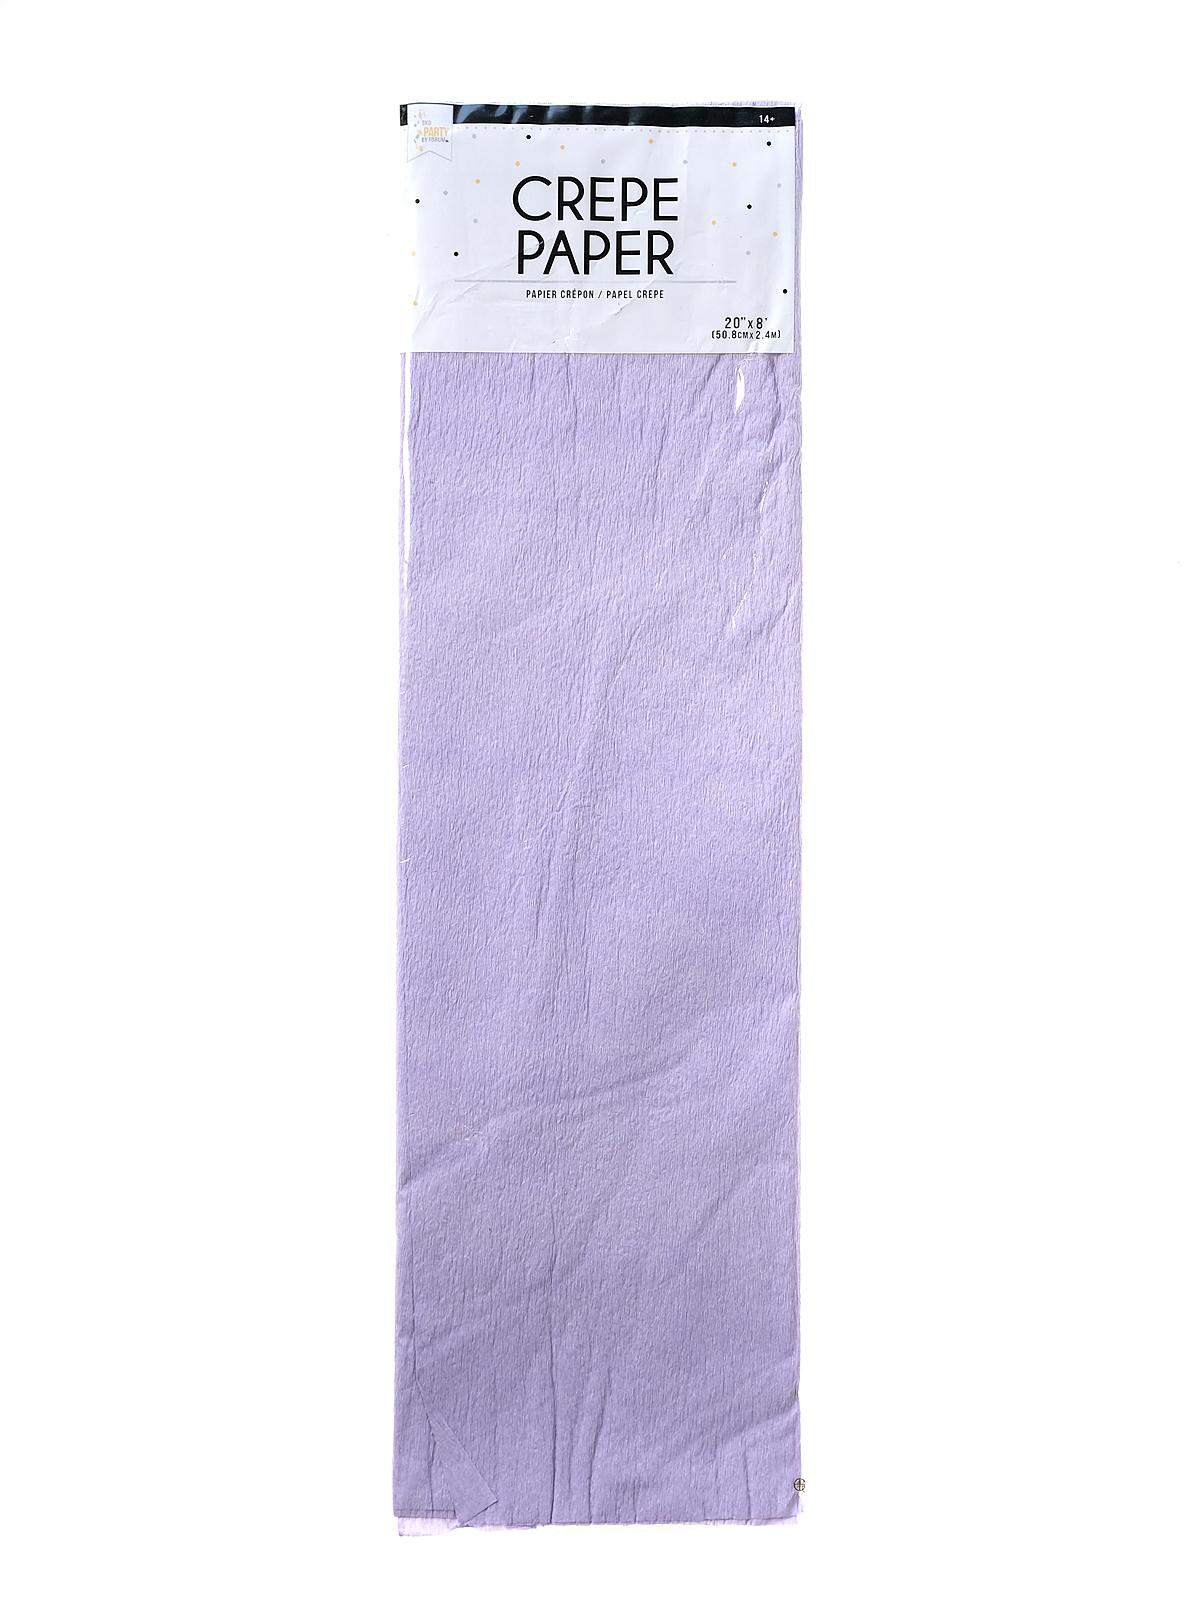 Crepe Paper Folds 20 in. x 8 ft.